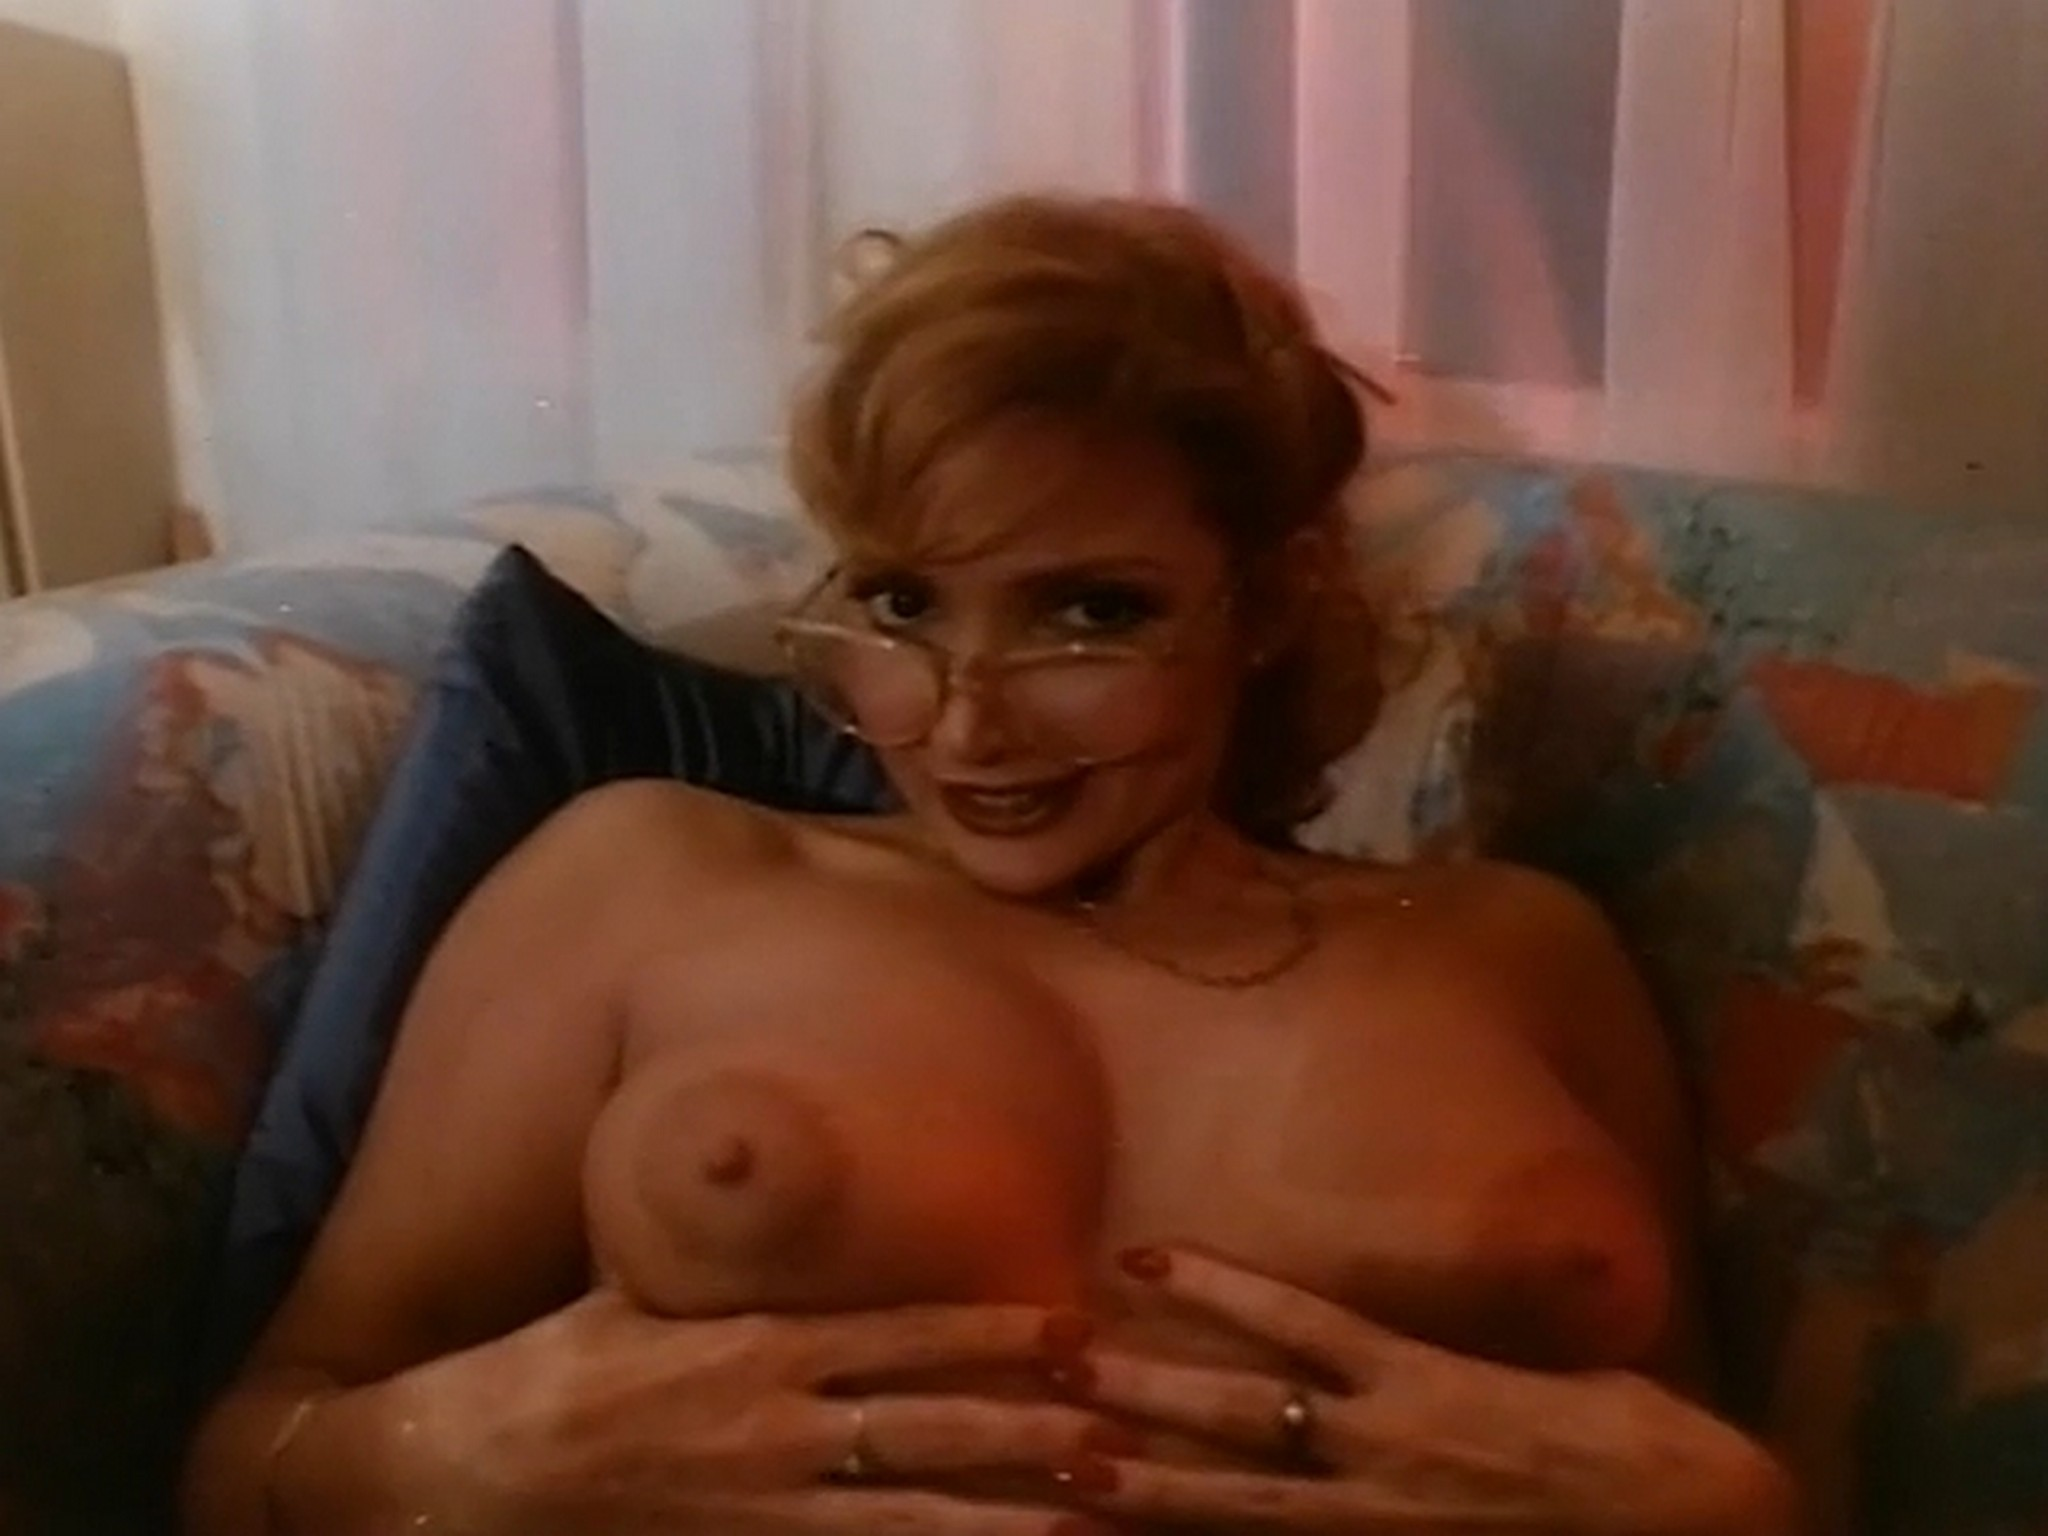 Lydie Denier nude sex Eva Czemerys and others nude too Flesh and Fire 1985 DVDRip 2